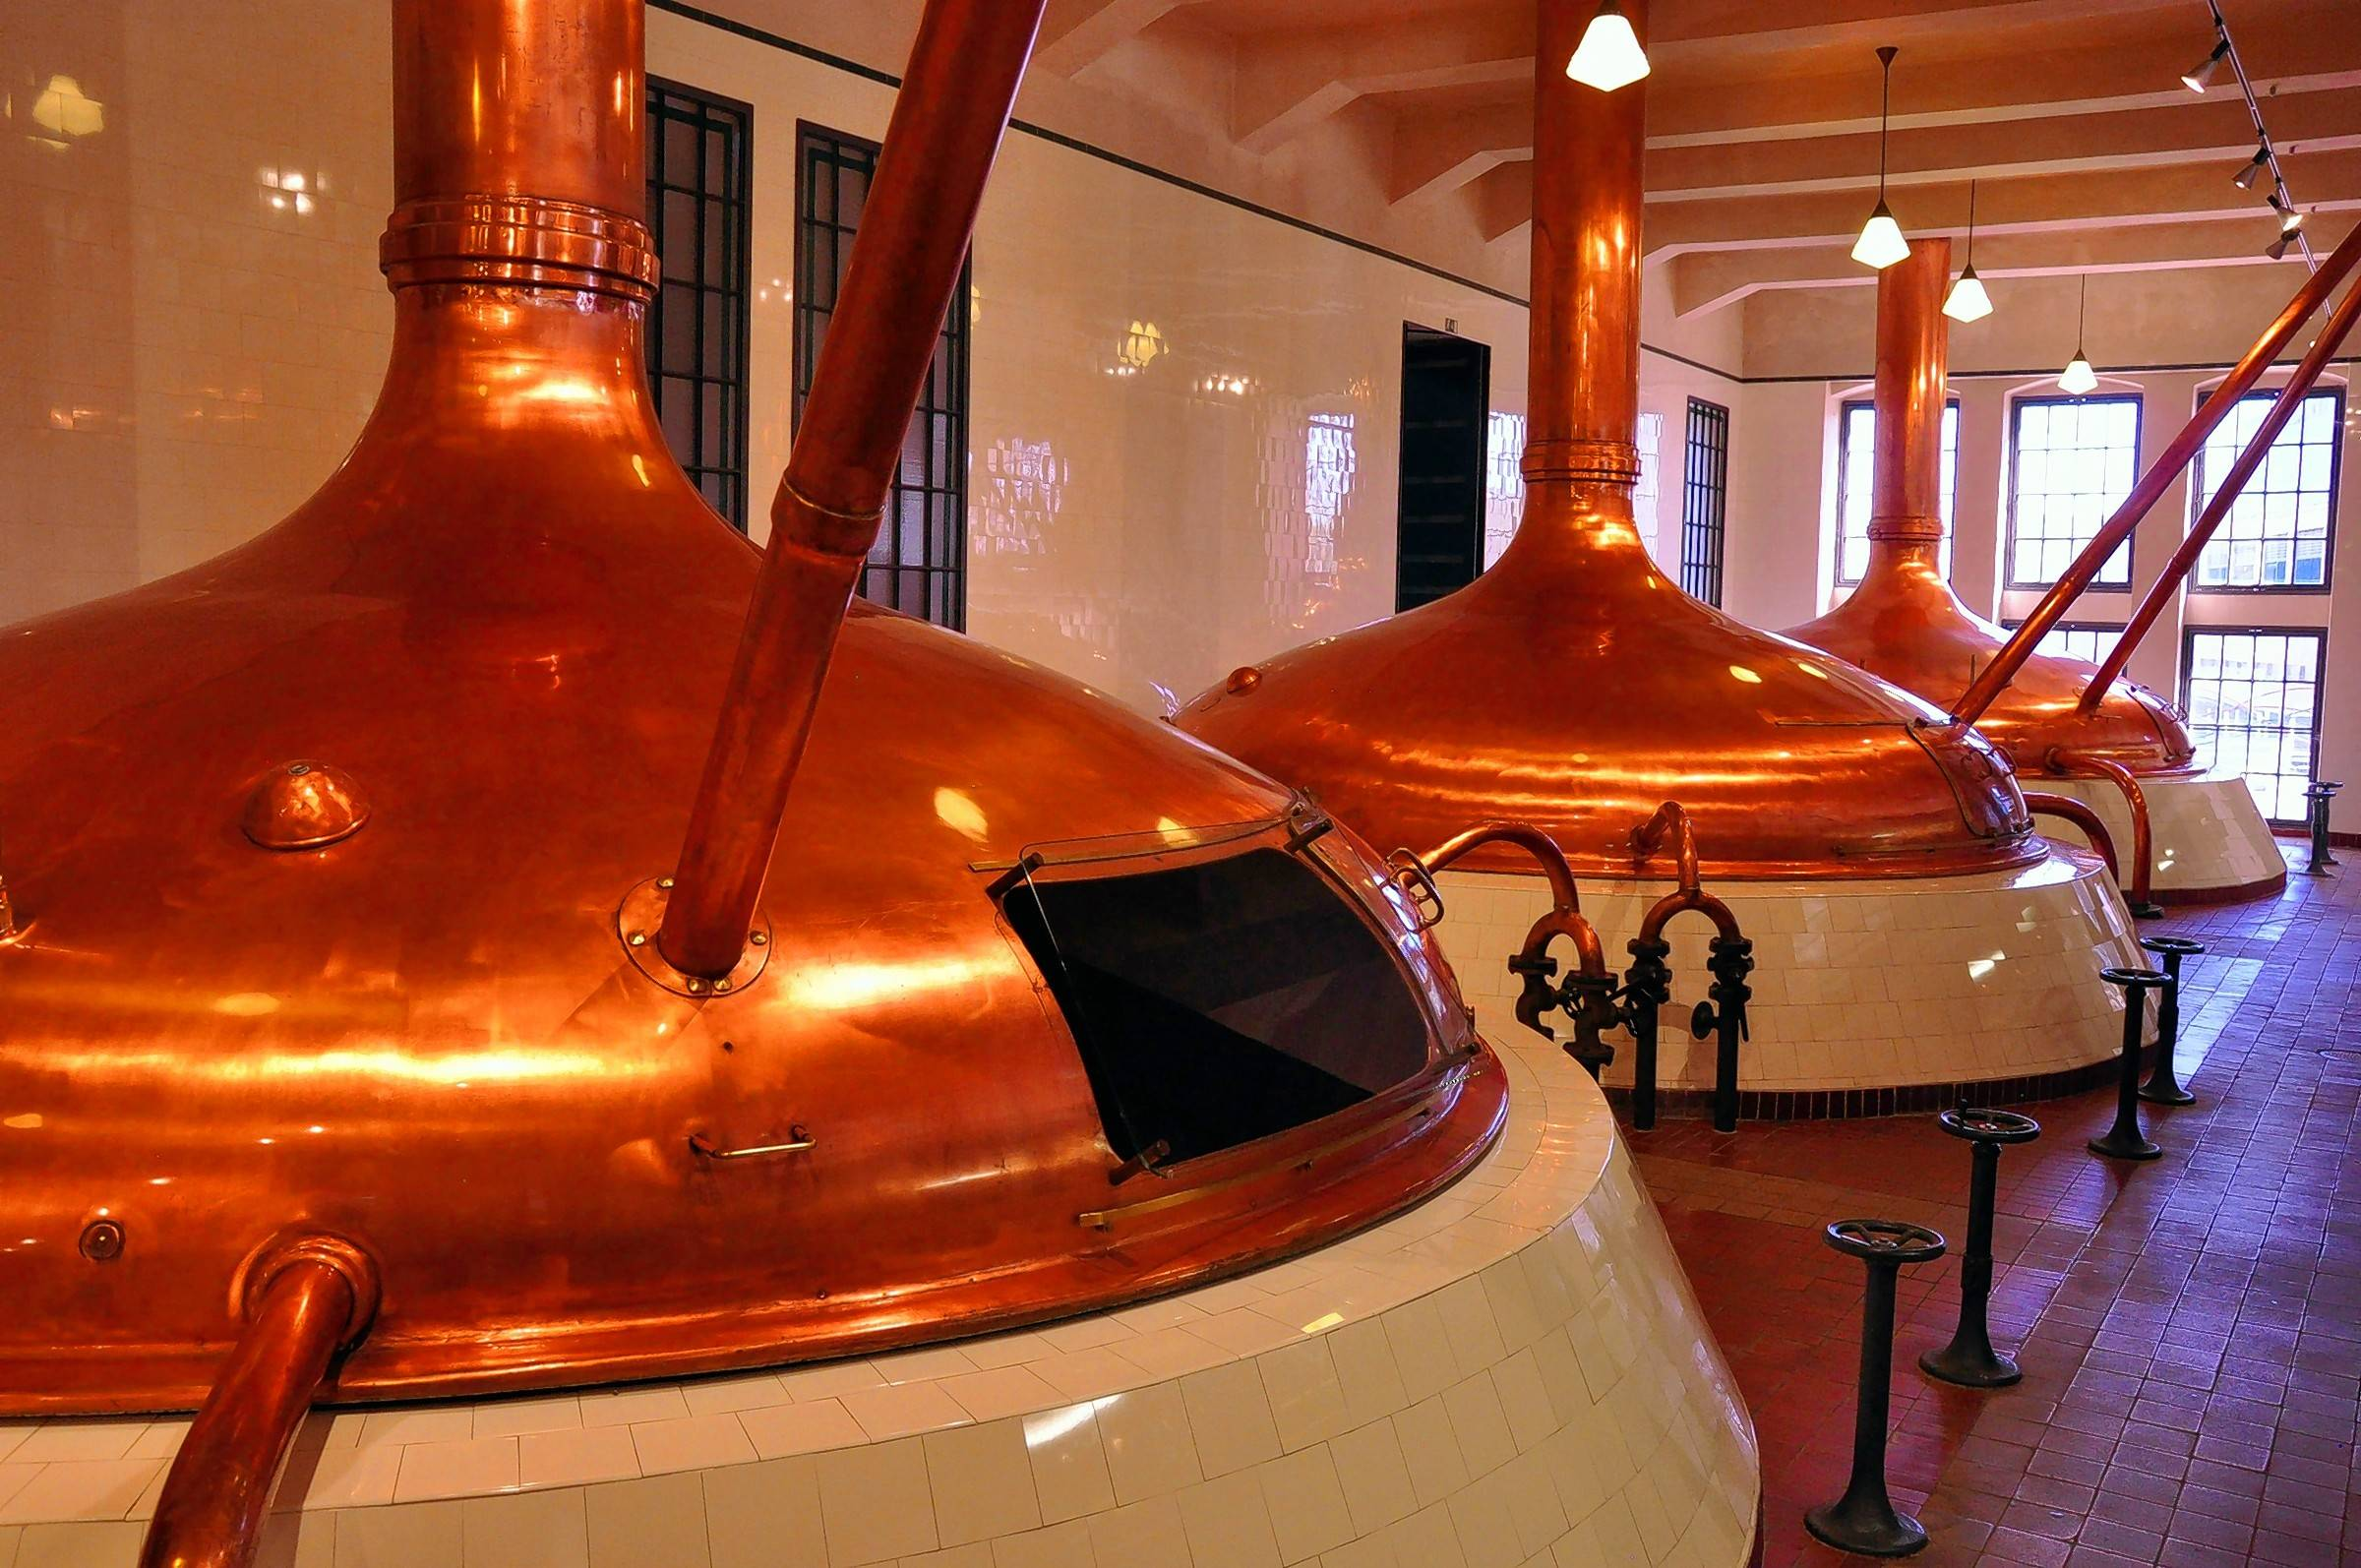 Copper brew kettles in the Pilsner Urquell Brewery are now just for show. More modern brew kettles are used today, but the recipe and ingredients go back to the 19th century.